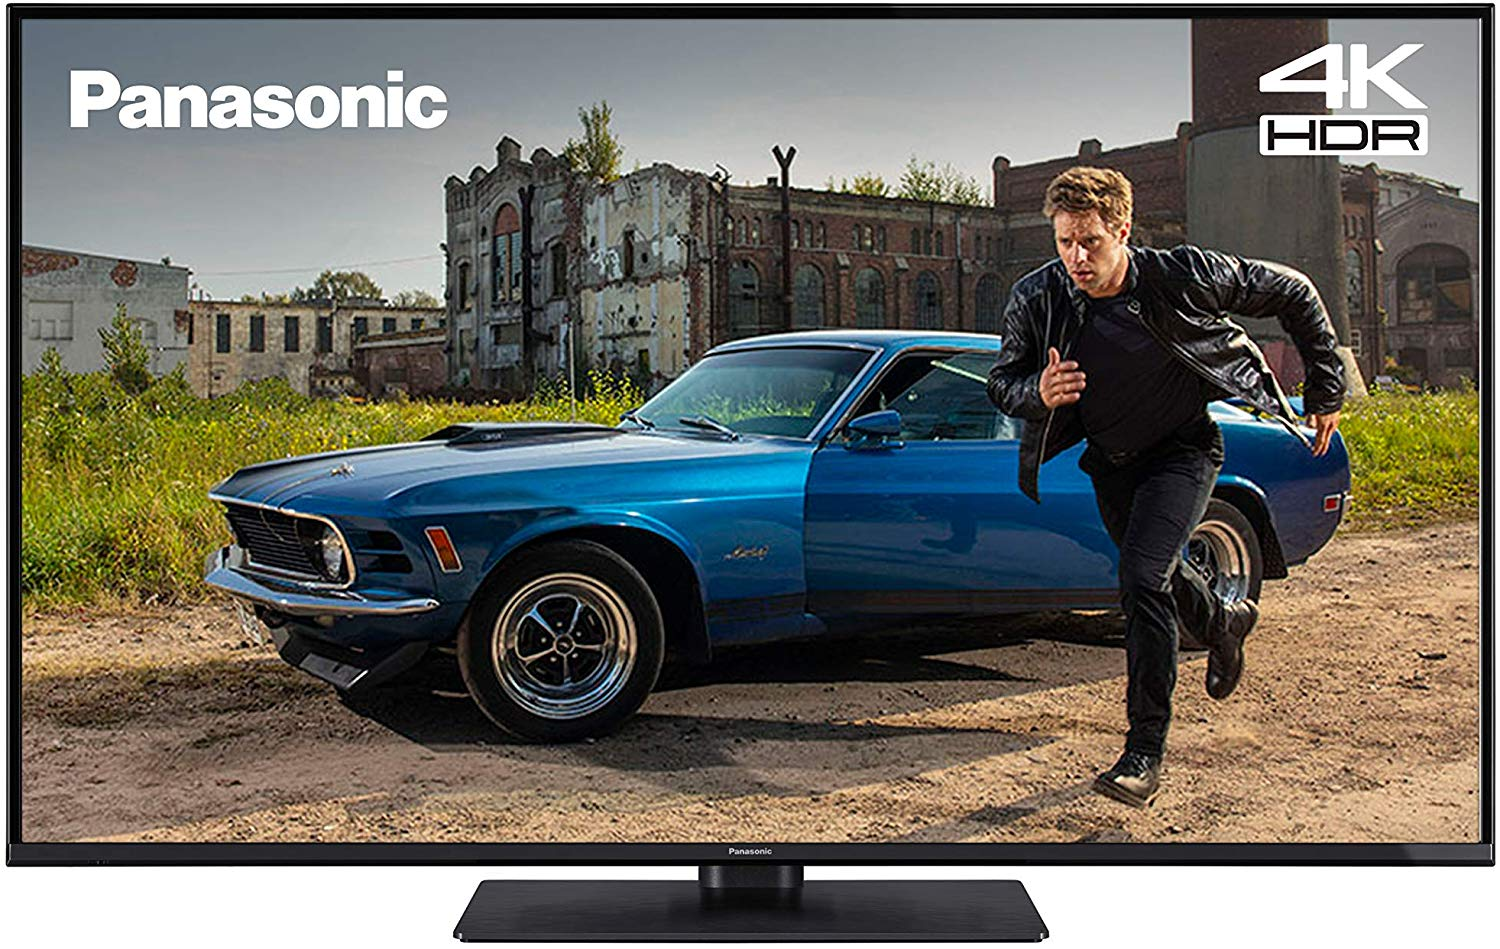 Save £100.99 on Panasonic TX-43GX551 43 inch 4K Ultra HD HDR Smart TV with Freeview Play, Black (2019)